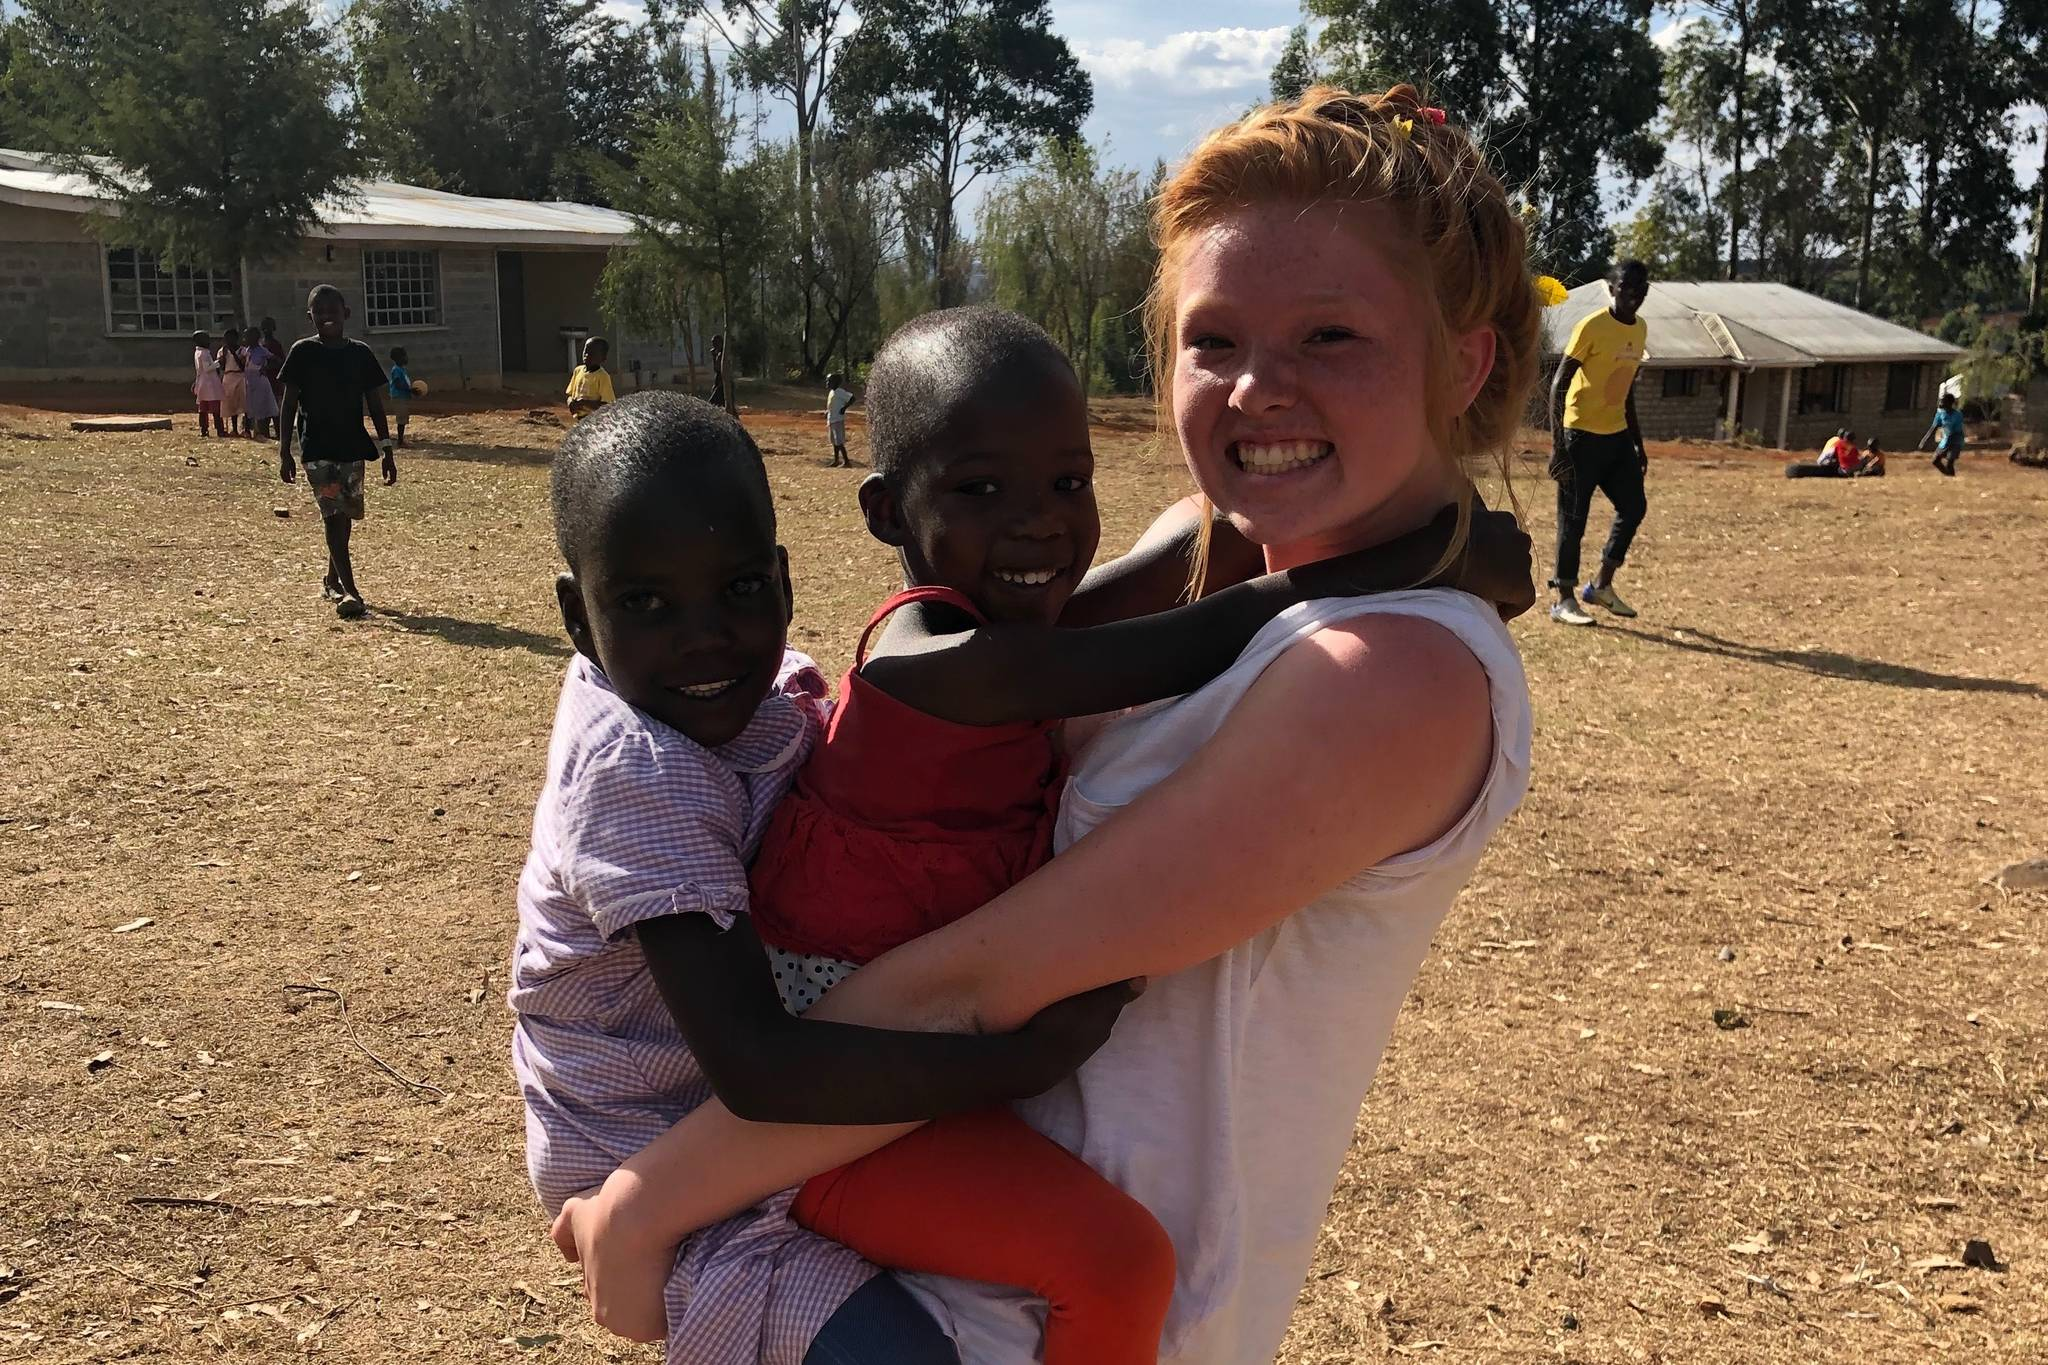 Lakewood softball player travels to Africa for a good cause